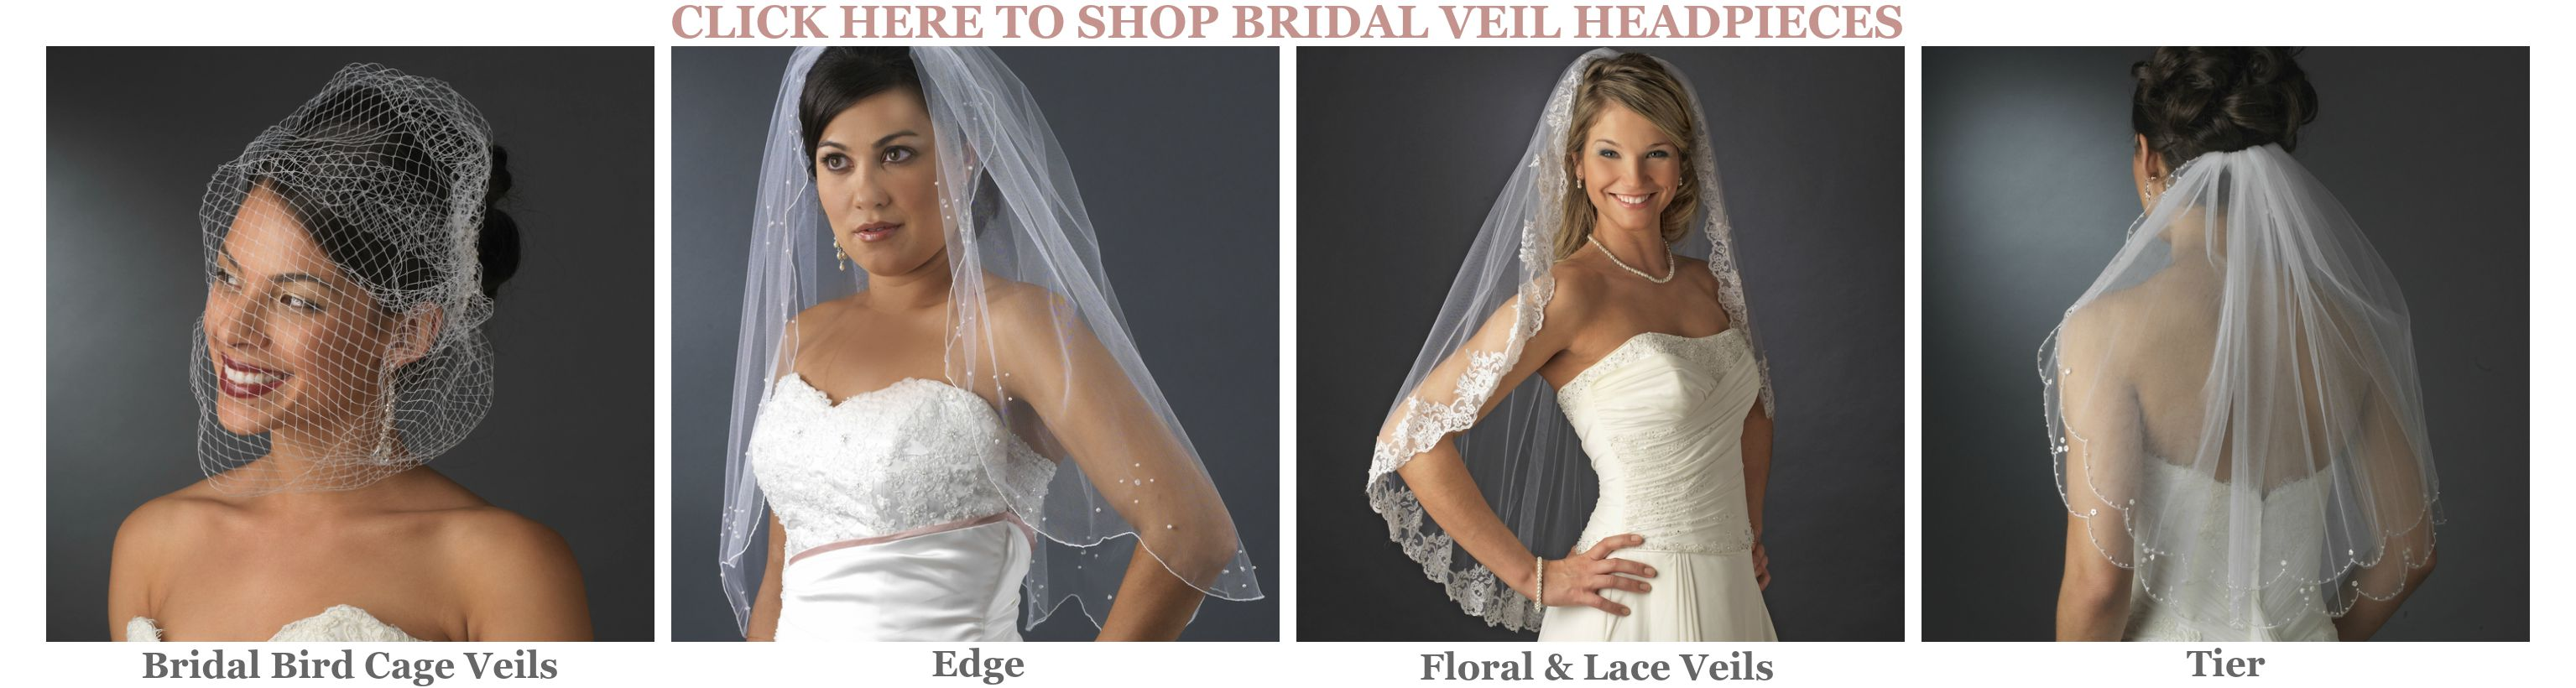 Bridal Veil Headpieces